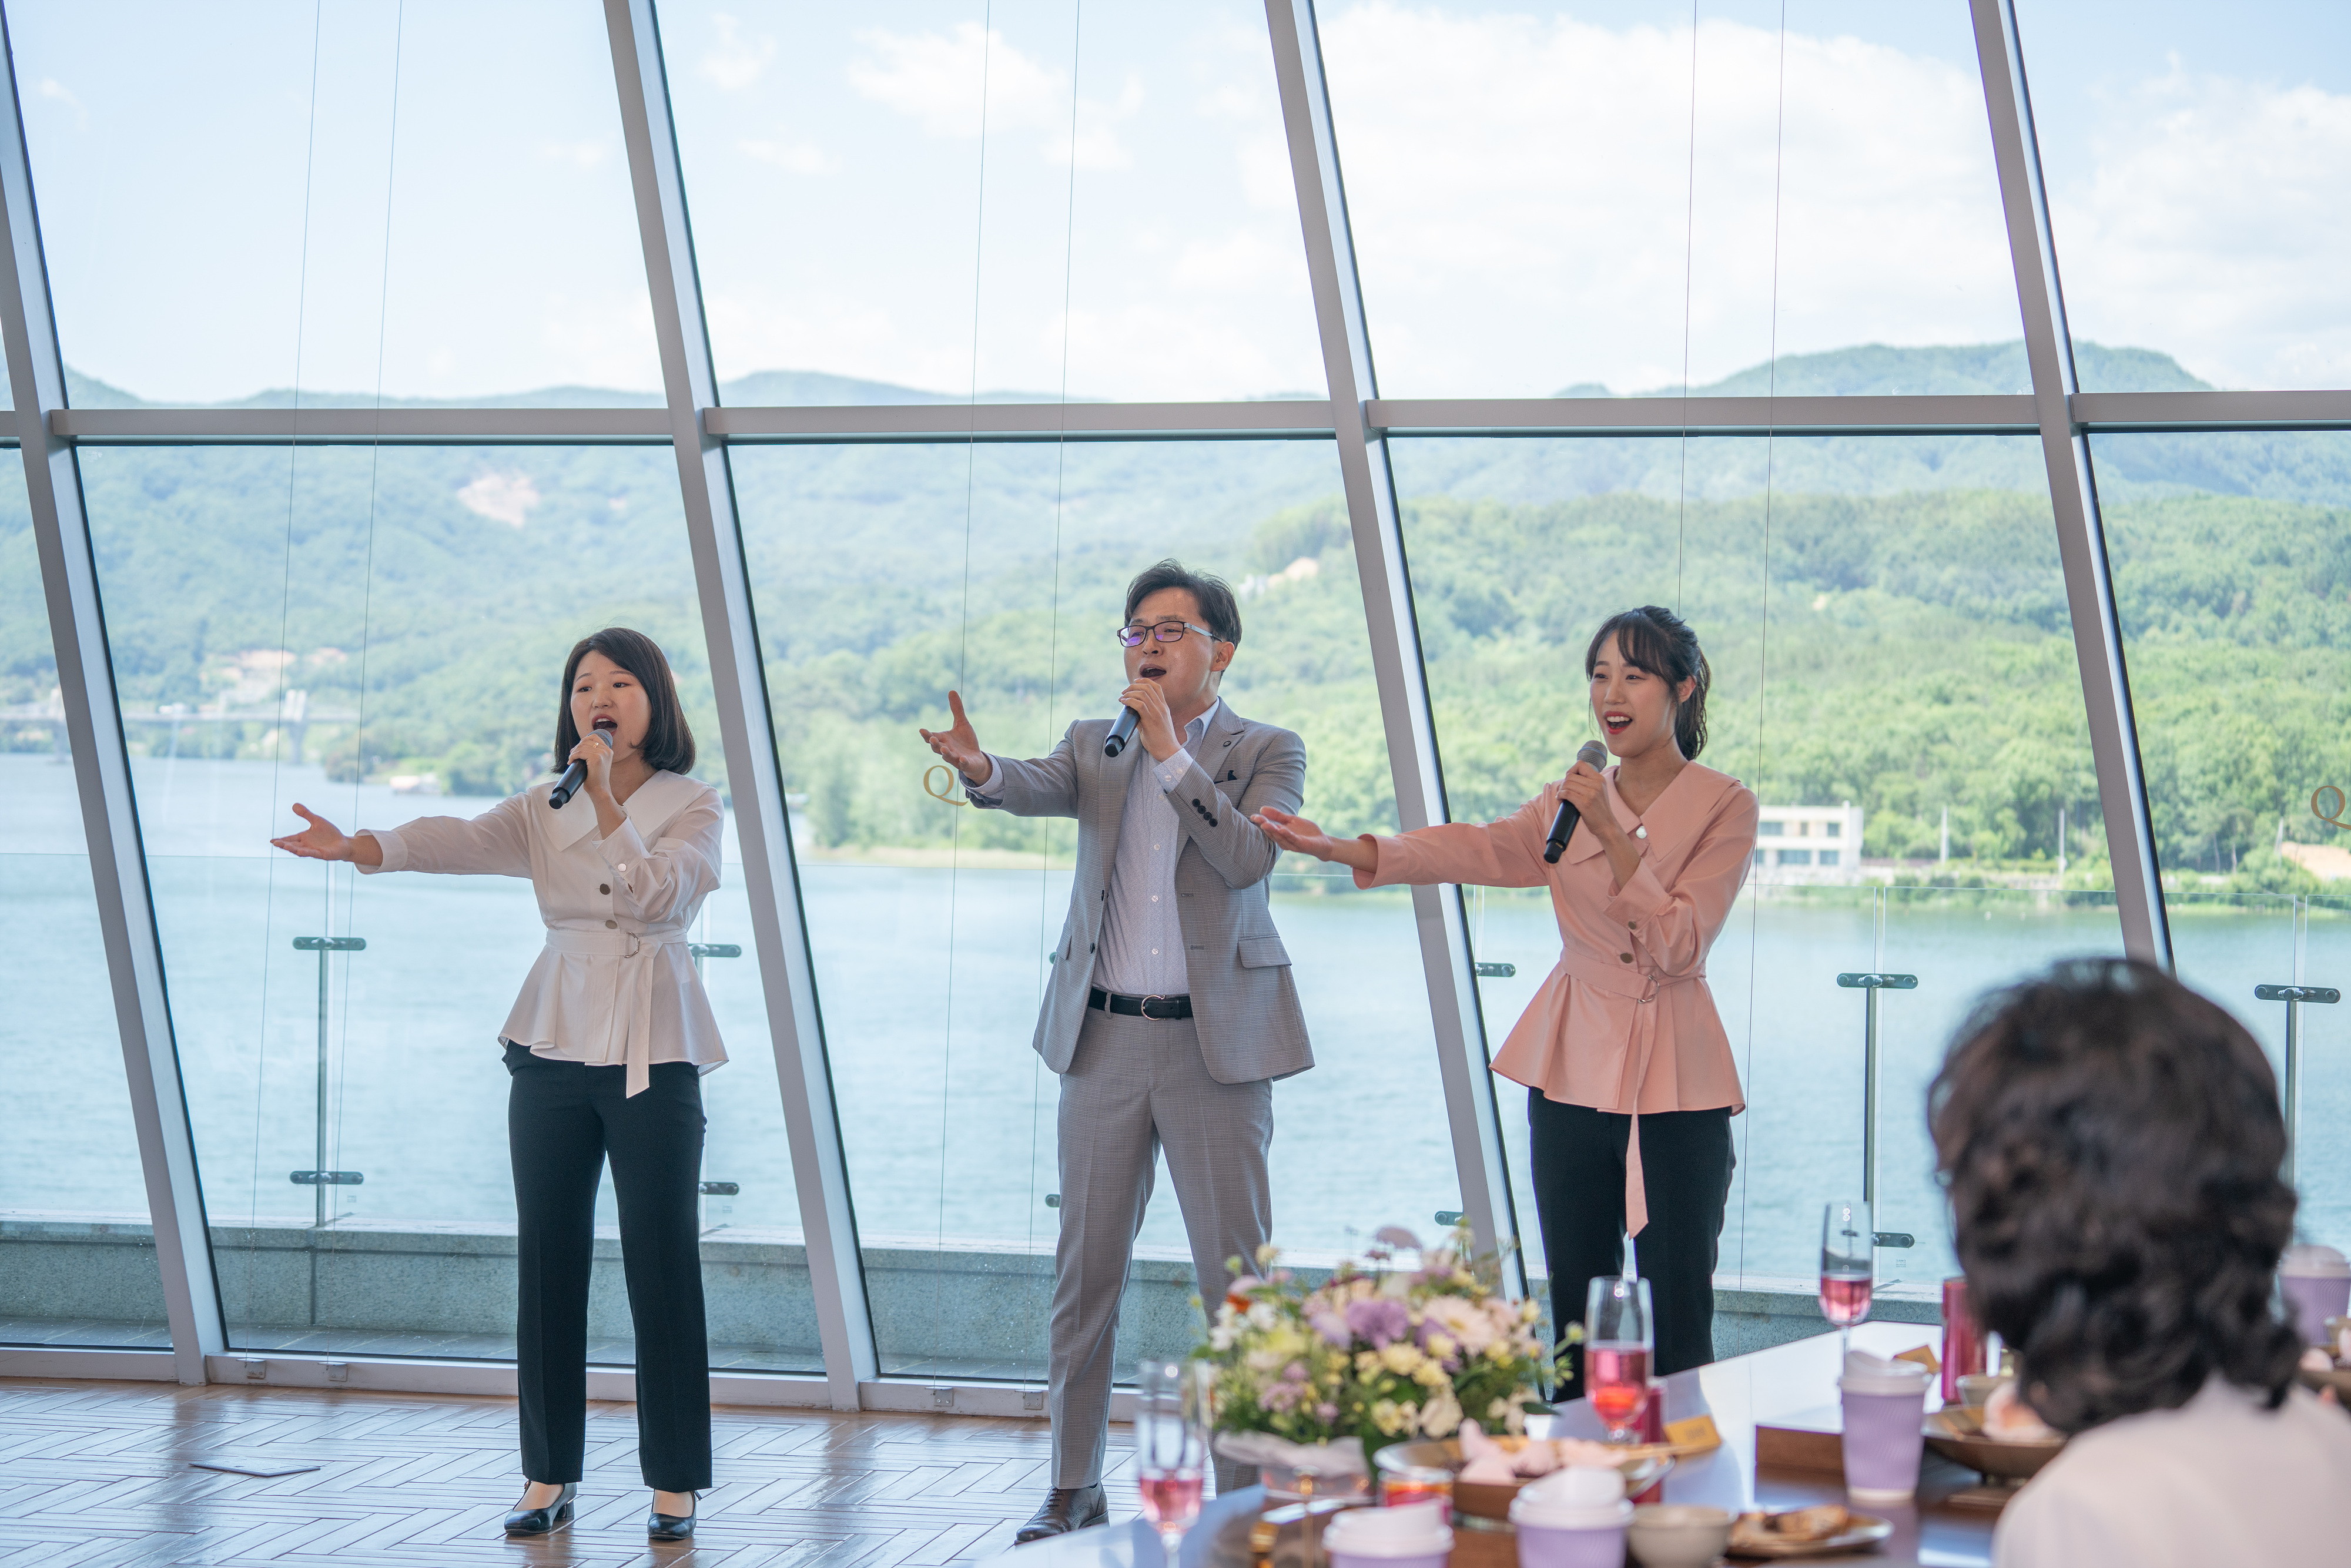 Tasting Event to celebrate the opening of Hyojeong Yeon officiated by True Parents